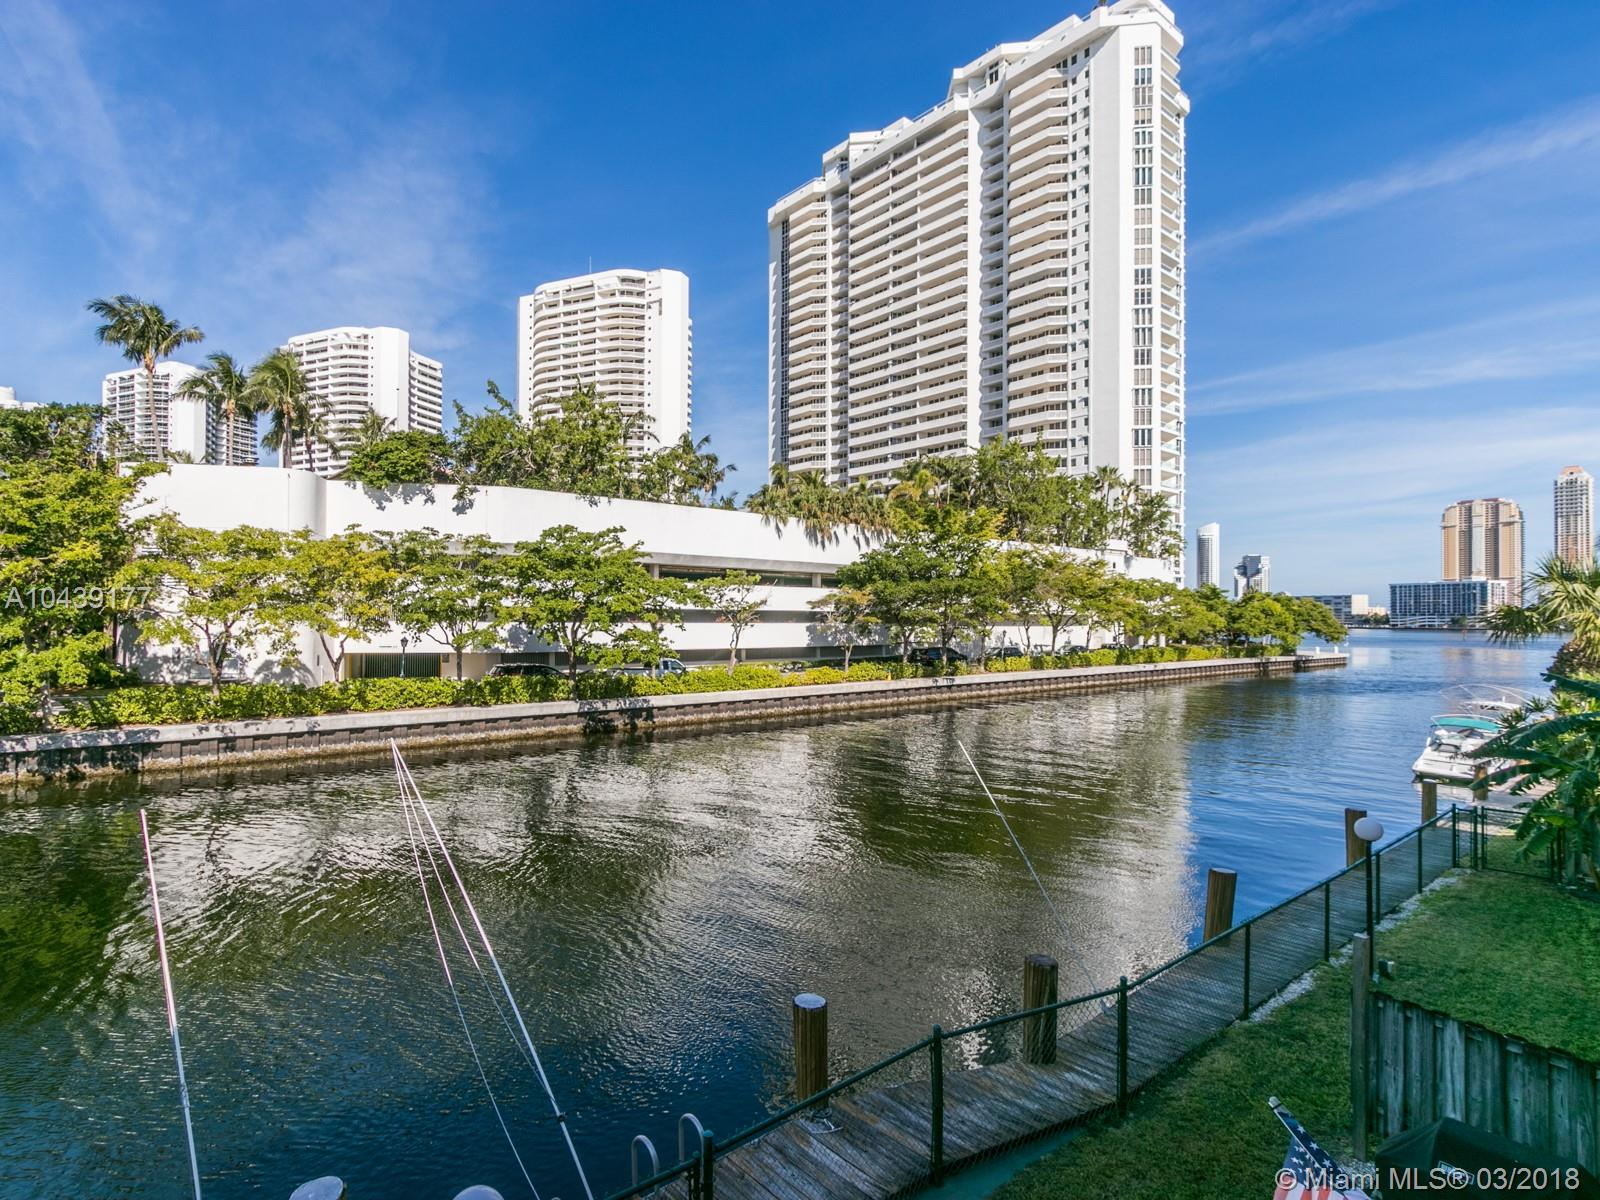 3745 NE 171 st #57 For Sale A10439177, FL